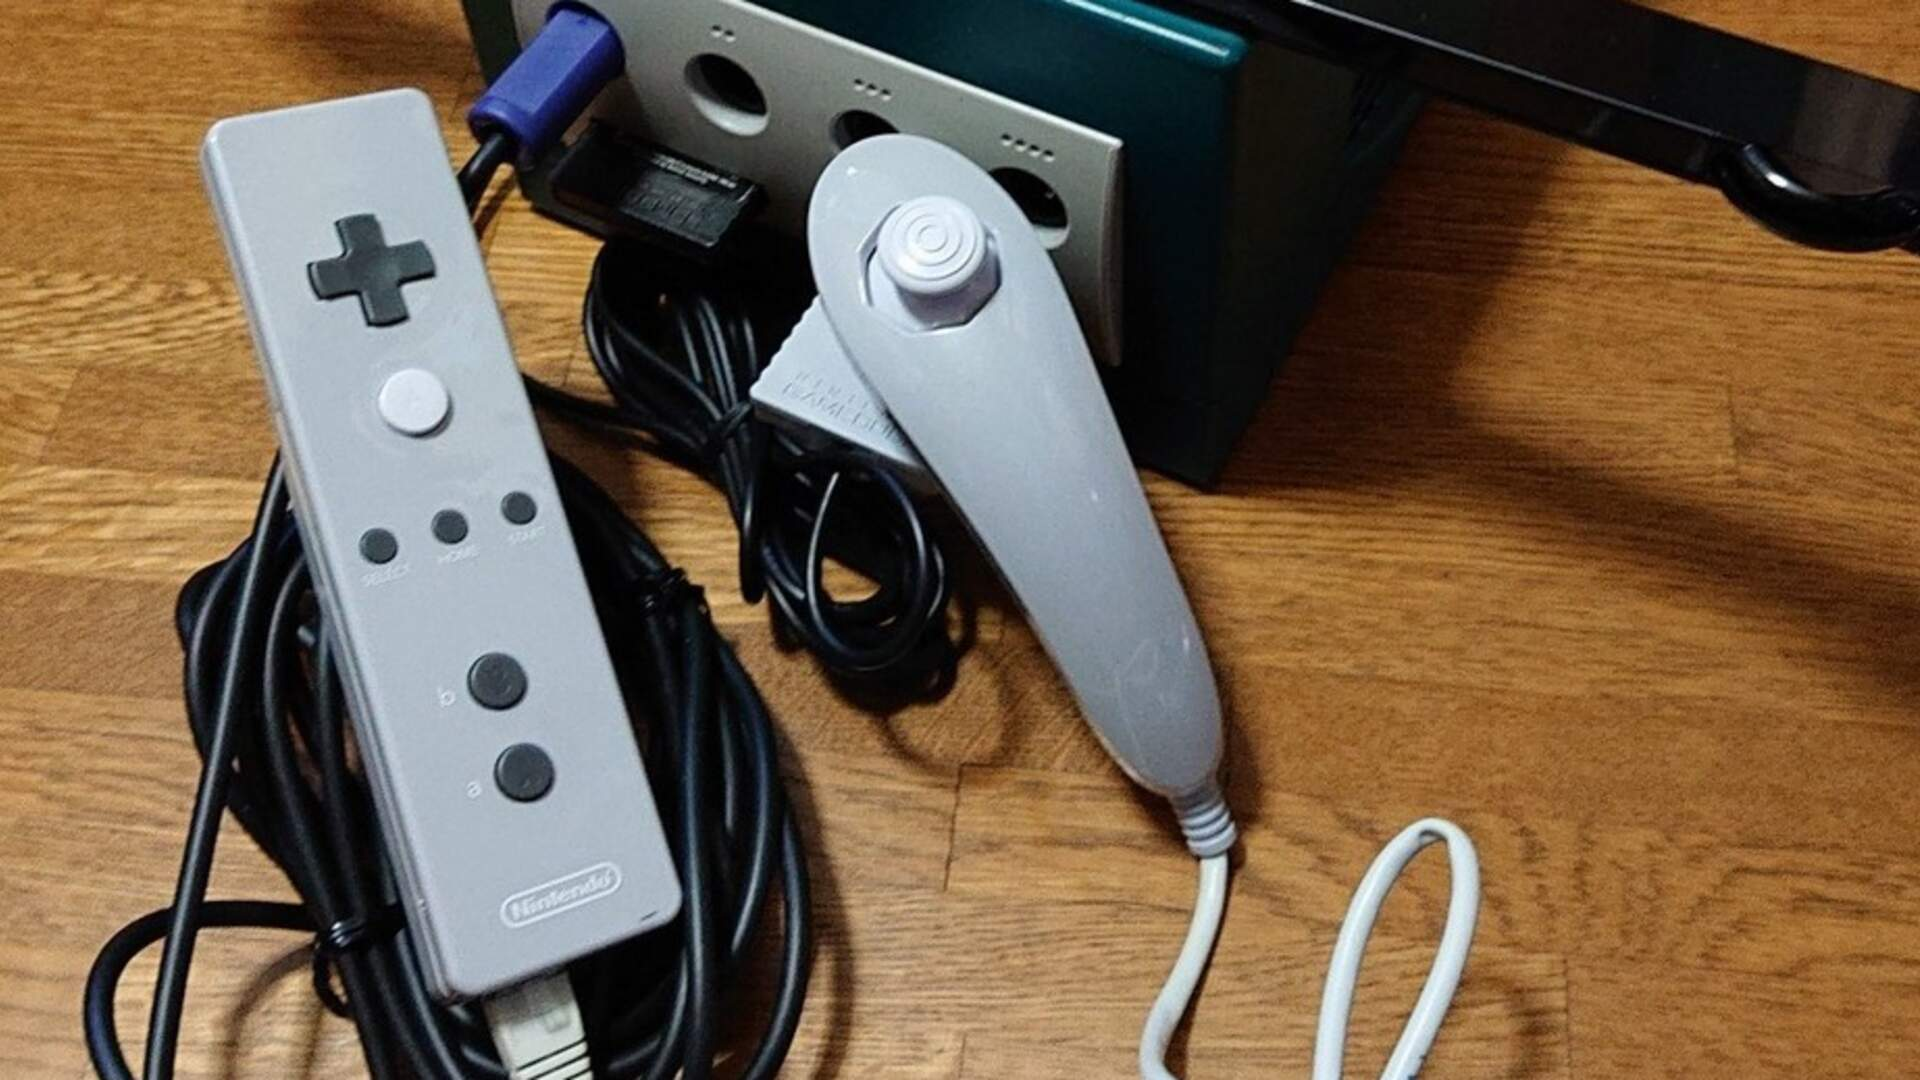 Rare Prototype Wii Remotes Unearthed at Japanese Auction